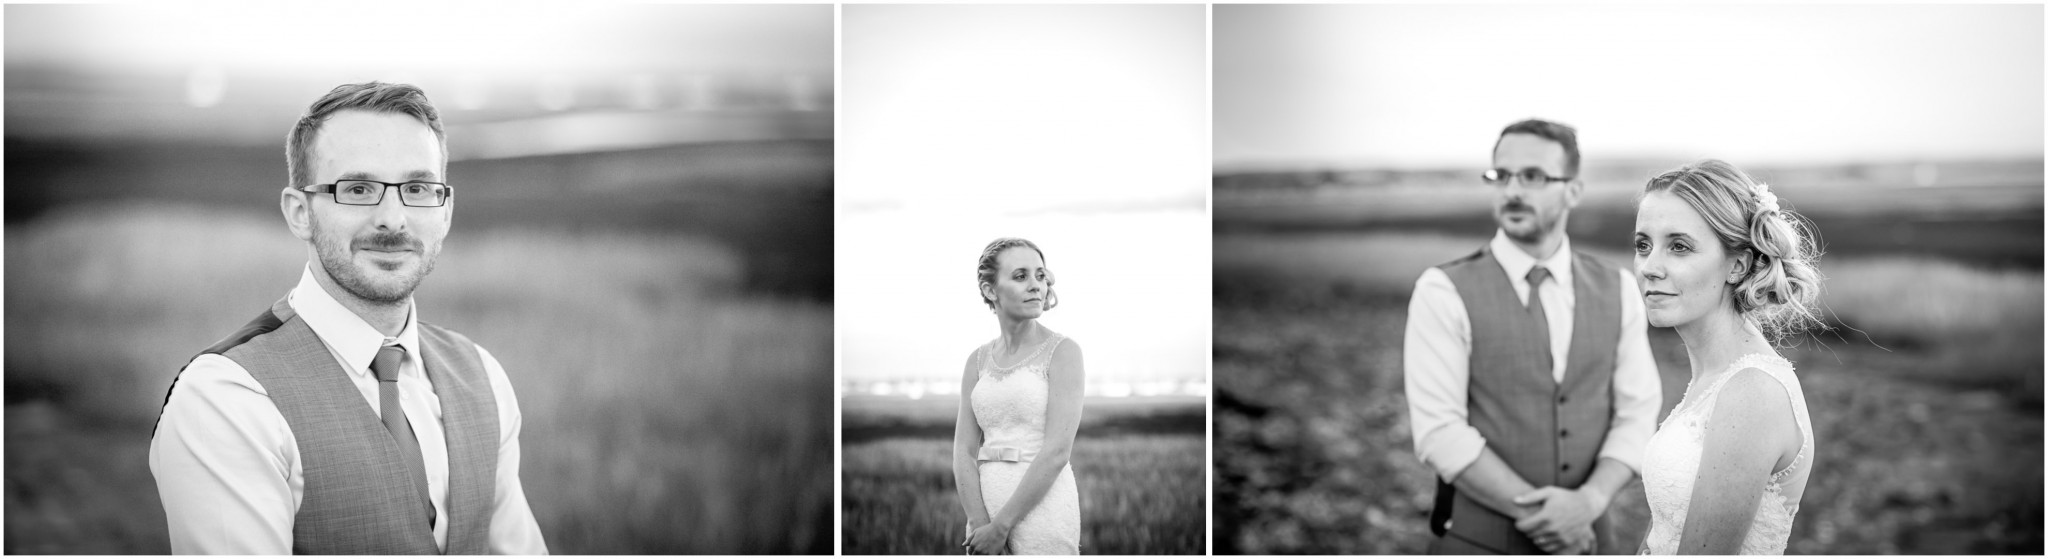 Tournerbury Woods Estate Wedding potraits of Bride & Groom